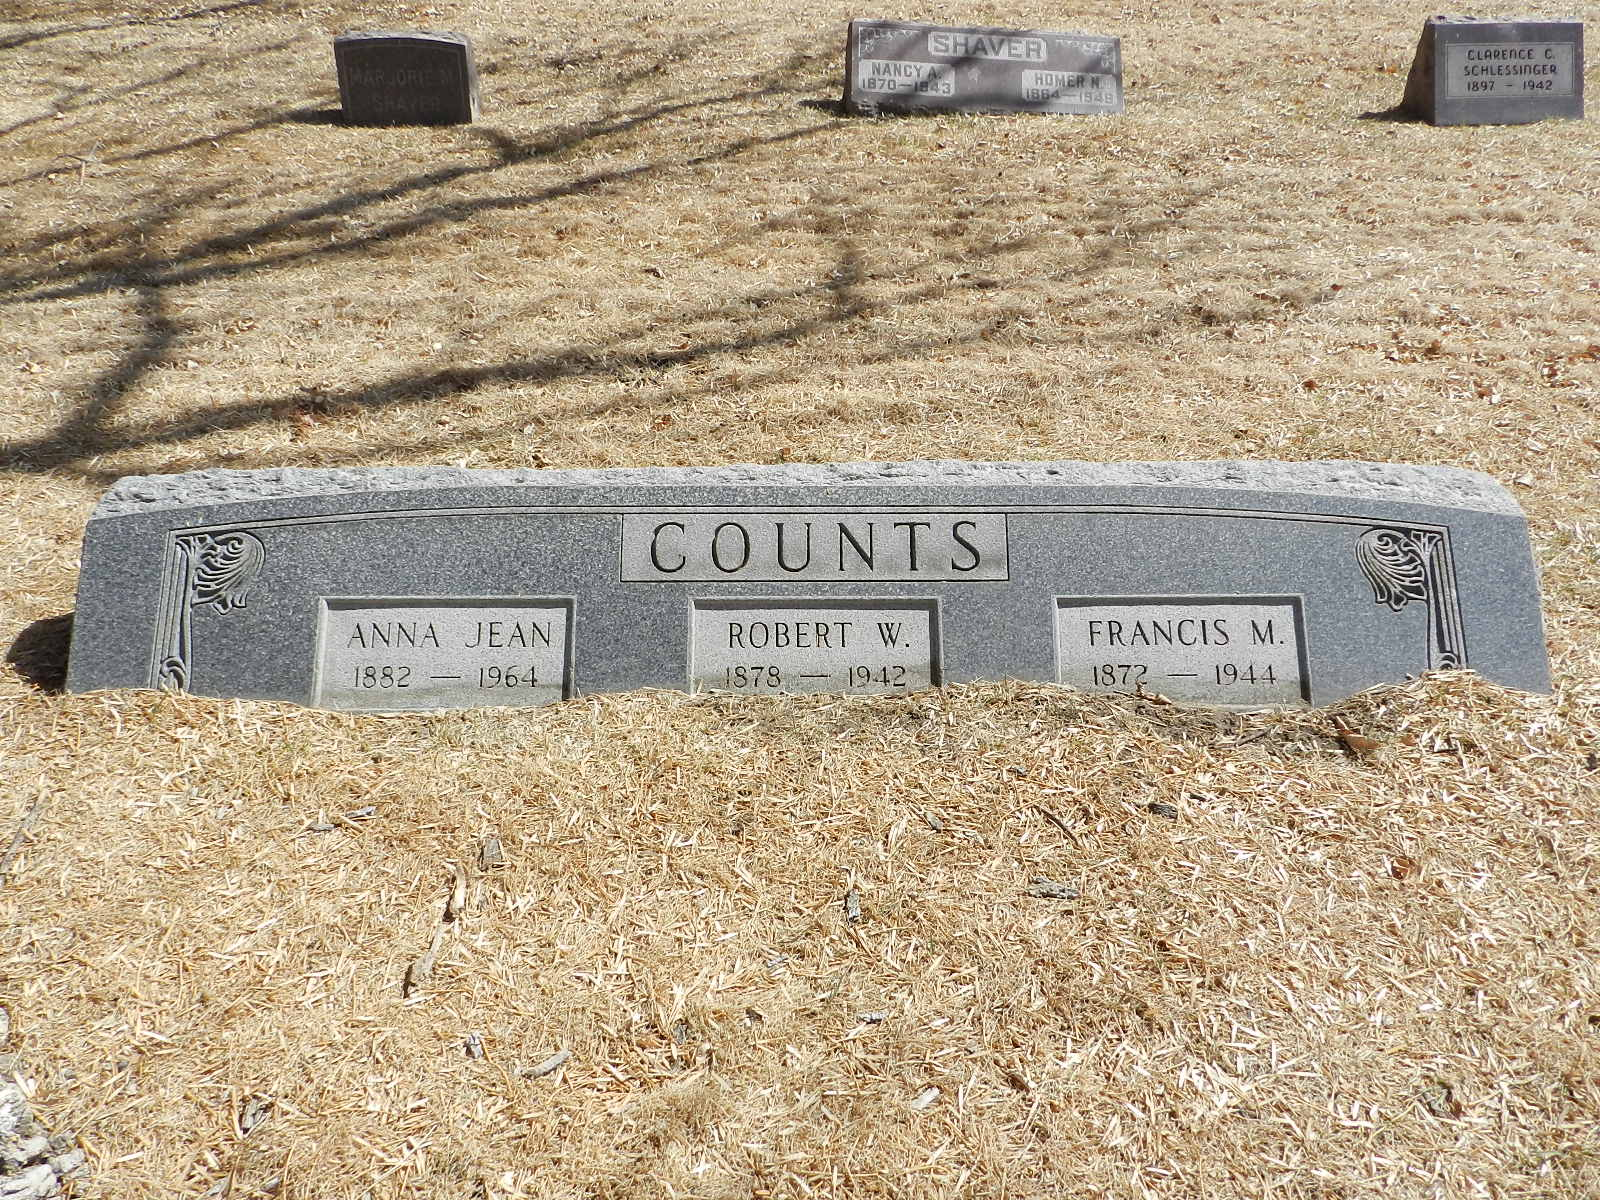 Francis M Counts